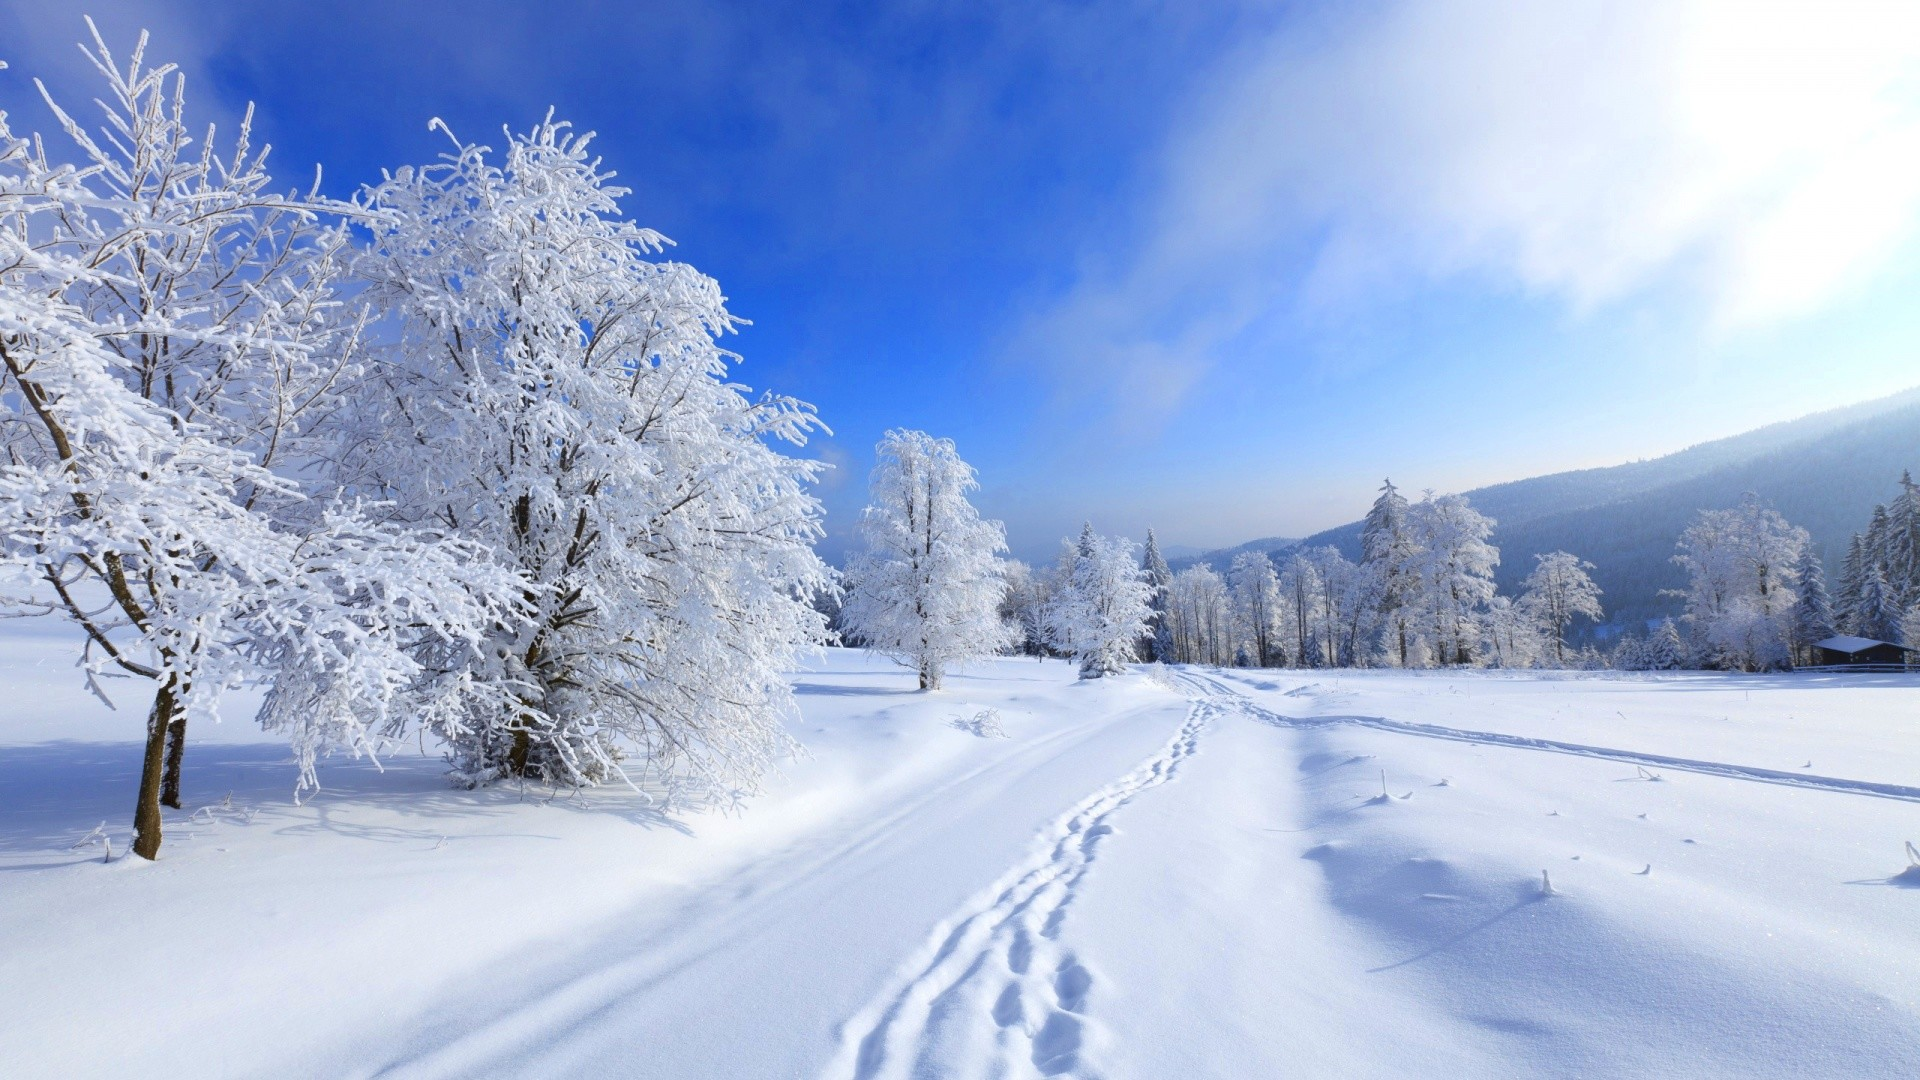 Free Animated 3d Wallpaper Winter Snow Desktop Wallpaper 33 Images